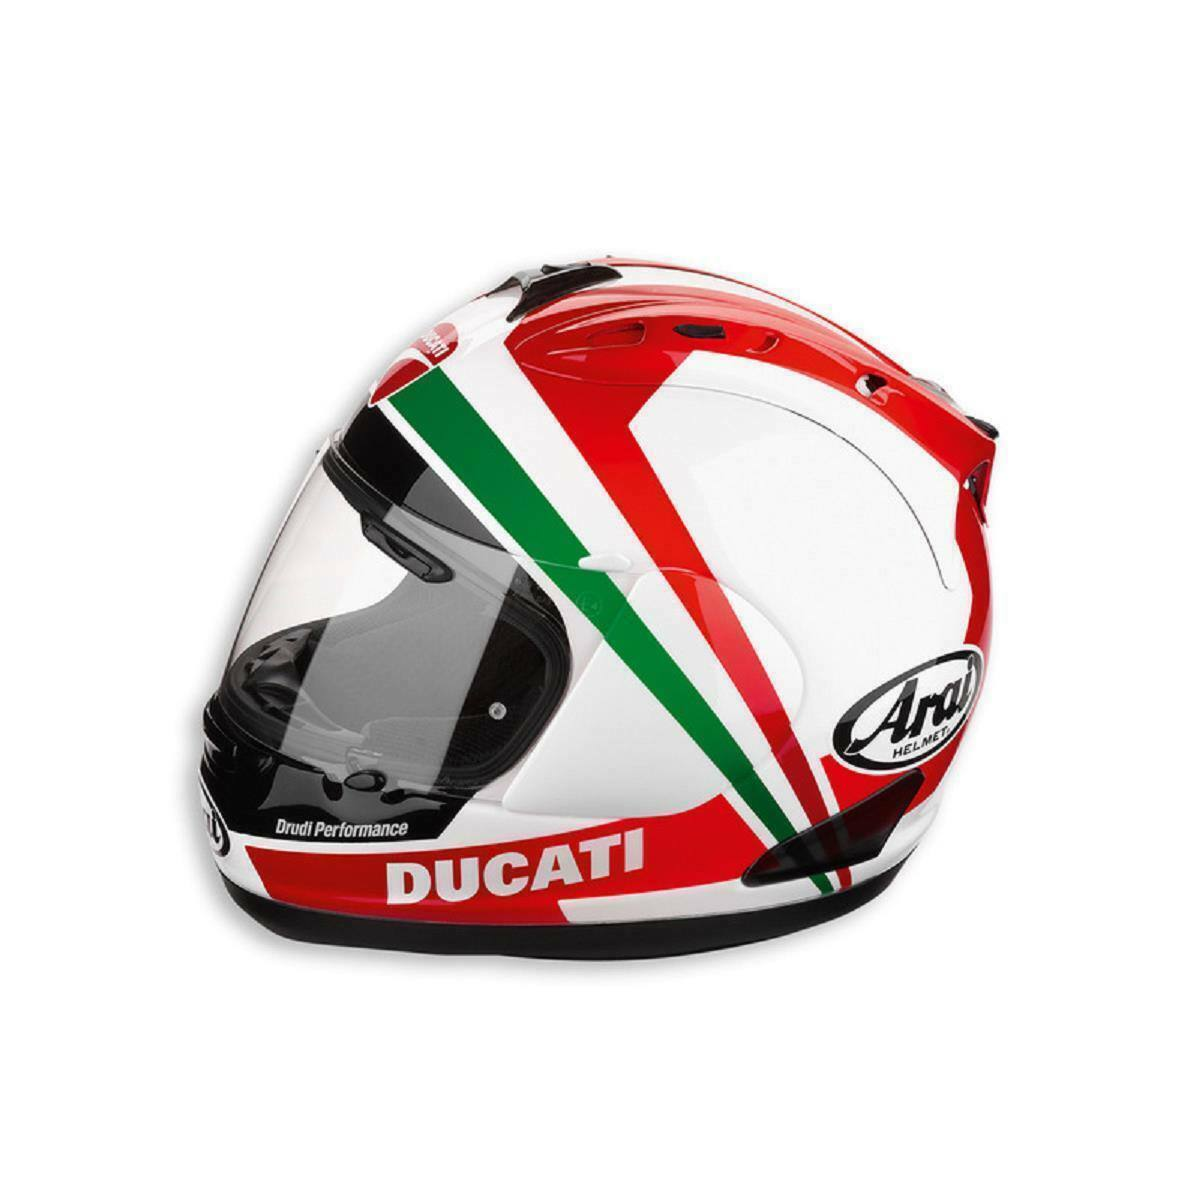 NEW Ducati Tricolore '12 Arai Corse V Helmet 981018496 USD,EURO,STERLINGS NEW